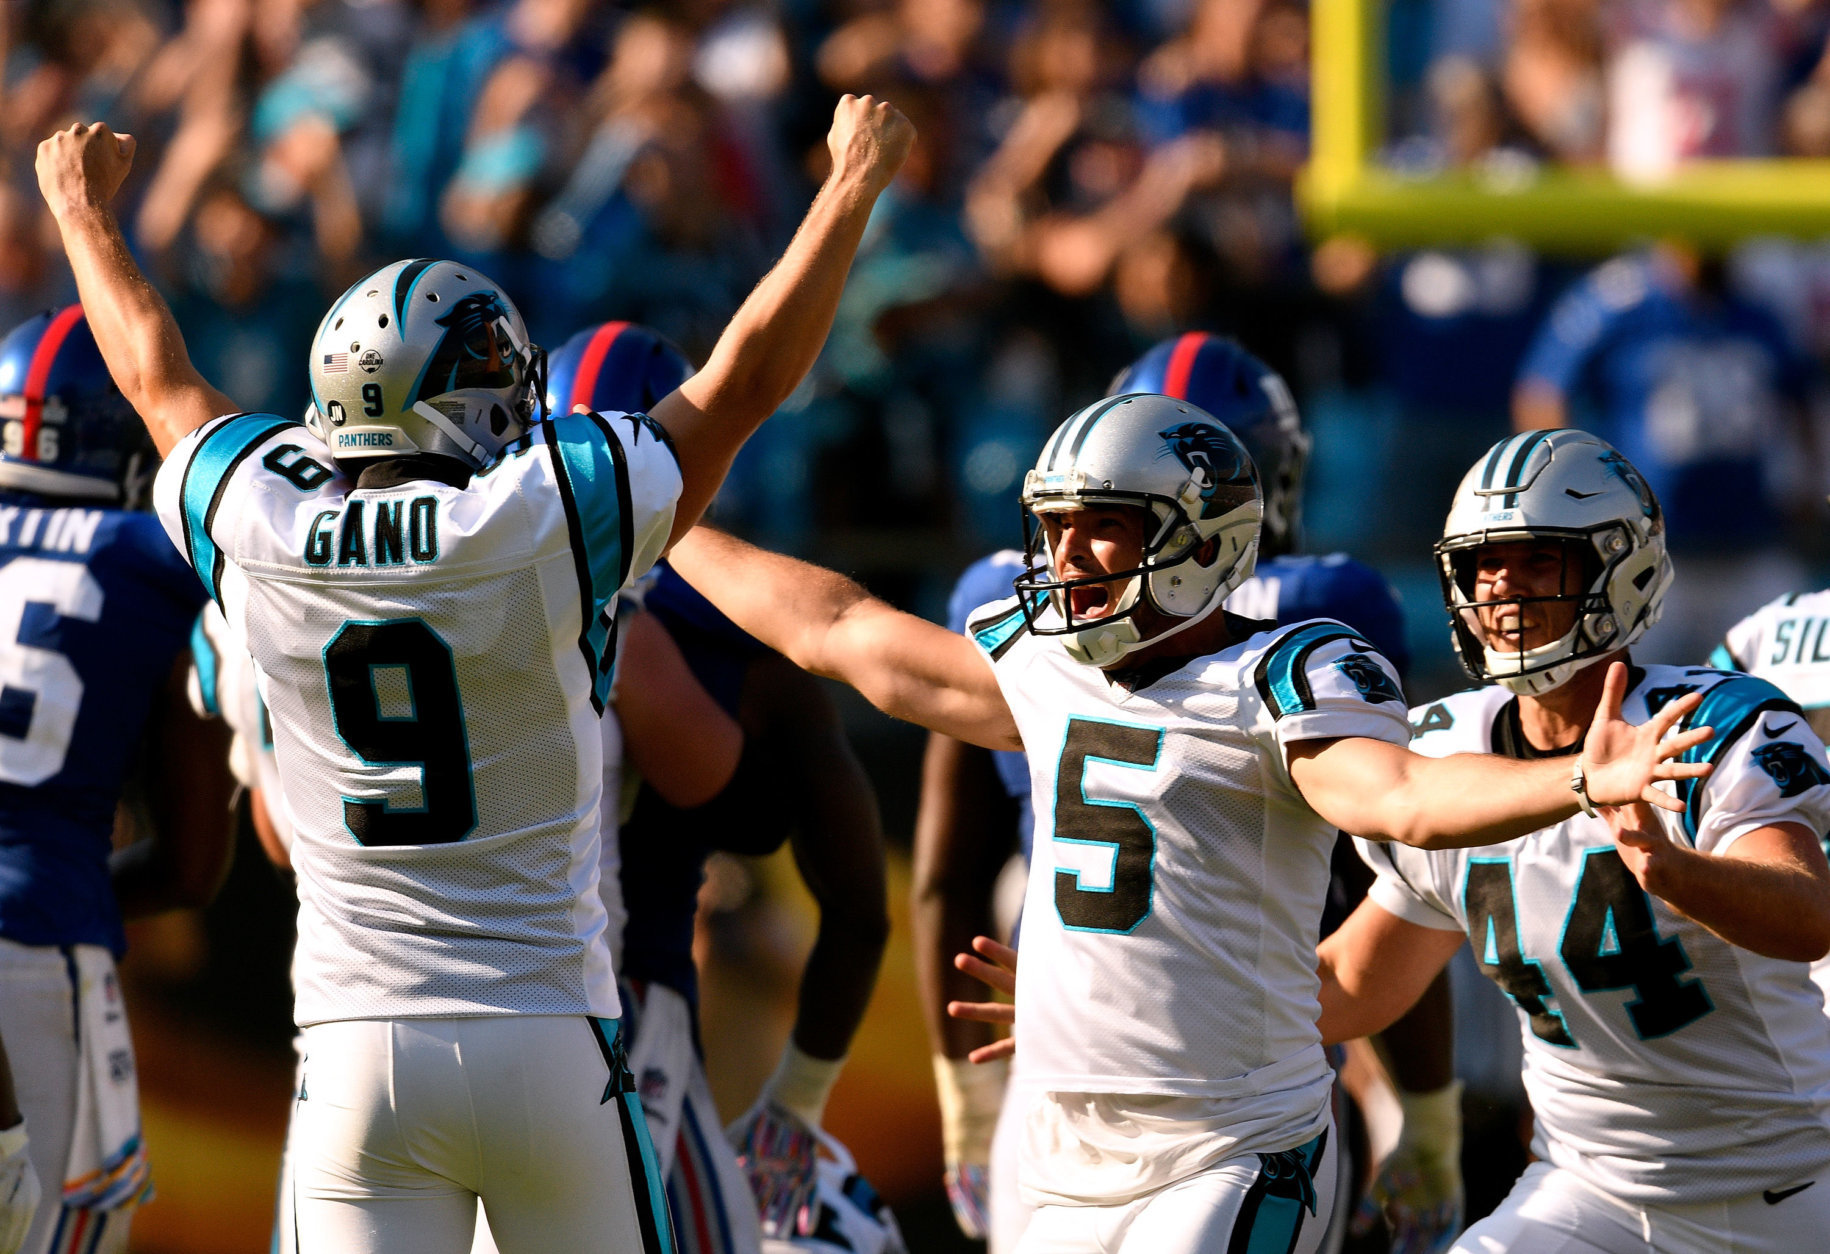 CHARLOTTE, NC - OCTOBER 07:  Kicker Graham Gano #9 celebrates with Michael Palardy #5 and J.J. Jansen #44 of the Carolina Panthers after his game-wining 63-yard field goal against the New York Giants during their game at Bank of America Stadium on October 7, 2018 in Charlotte, North Carolina. The Panthers won 33-31.  (Photo by Grant Halverson/Getty Images)